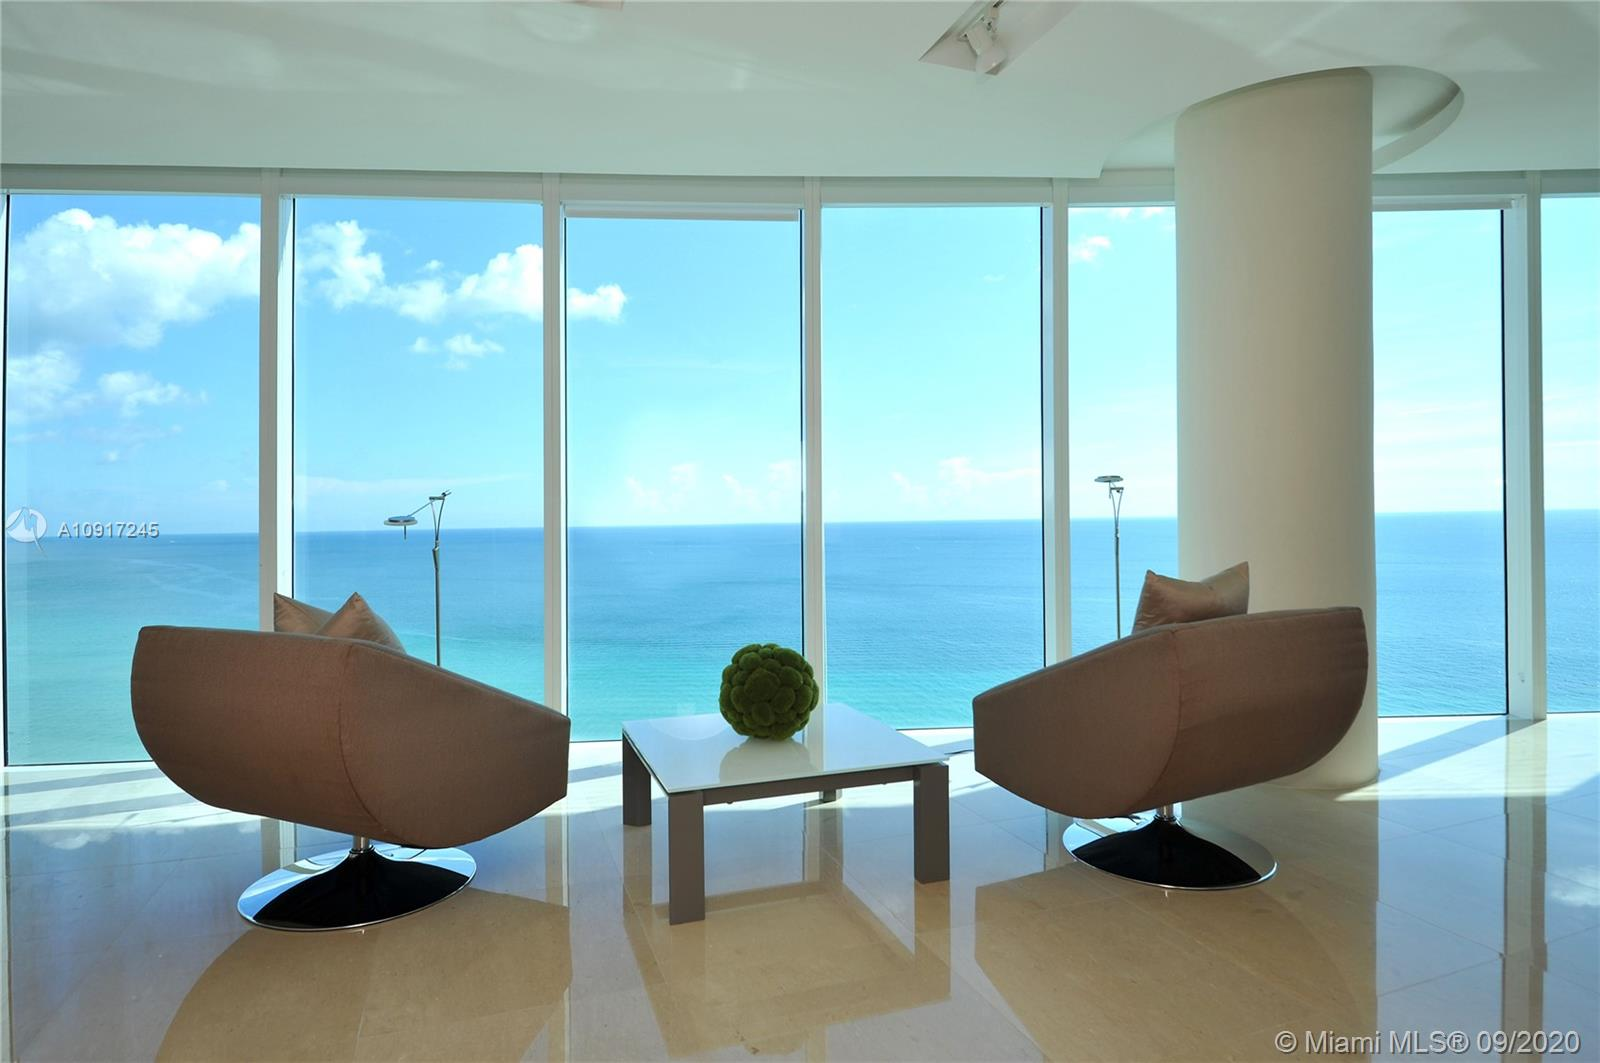 BRING YOUR TOOTHBRUSH. Impeccably designed & finished by world renowned designer, Steven G, this stunning residence has been lightly used by the original owners. Enter through private foyer to EXPANSIVE ocean views w/ FLOOR TO CEILING glass throughout- truly feels like you are one w/ the ocean. Open floor plan sets up perfect for entertaining- no detail has been overlooked. 3 generous bedrooms, 3.5 baths, gourmet kitchen, custom modern built-ins & lighting, fine window treatments & more. Priced aggressively, fully DESIGNER FURNISHED. Trump Hollywood features Award-Winning 5 Star Amenities including: Breakfast Room, Wine & Cigar Lounges, Amazing Fitness Center, Spa, Tennis, Massage Rooms, Party Room, Theater, Personal Concierge, Pool & Beach Service. Call for a private viewing.